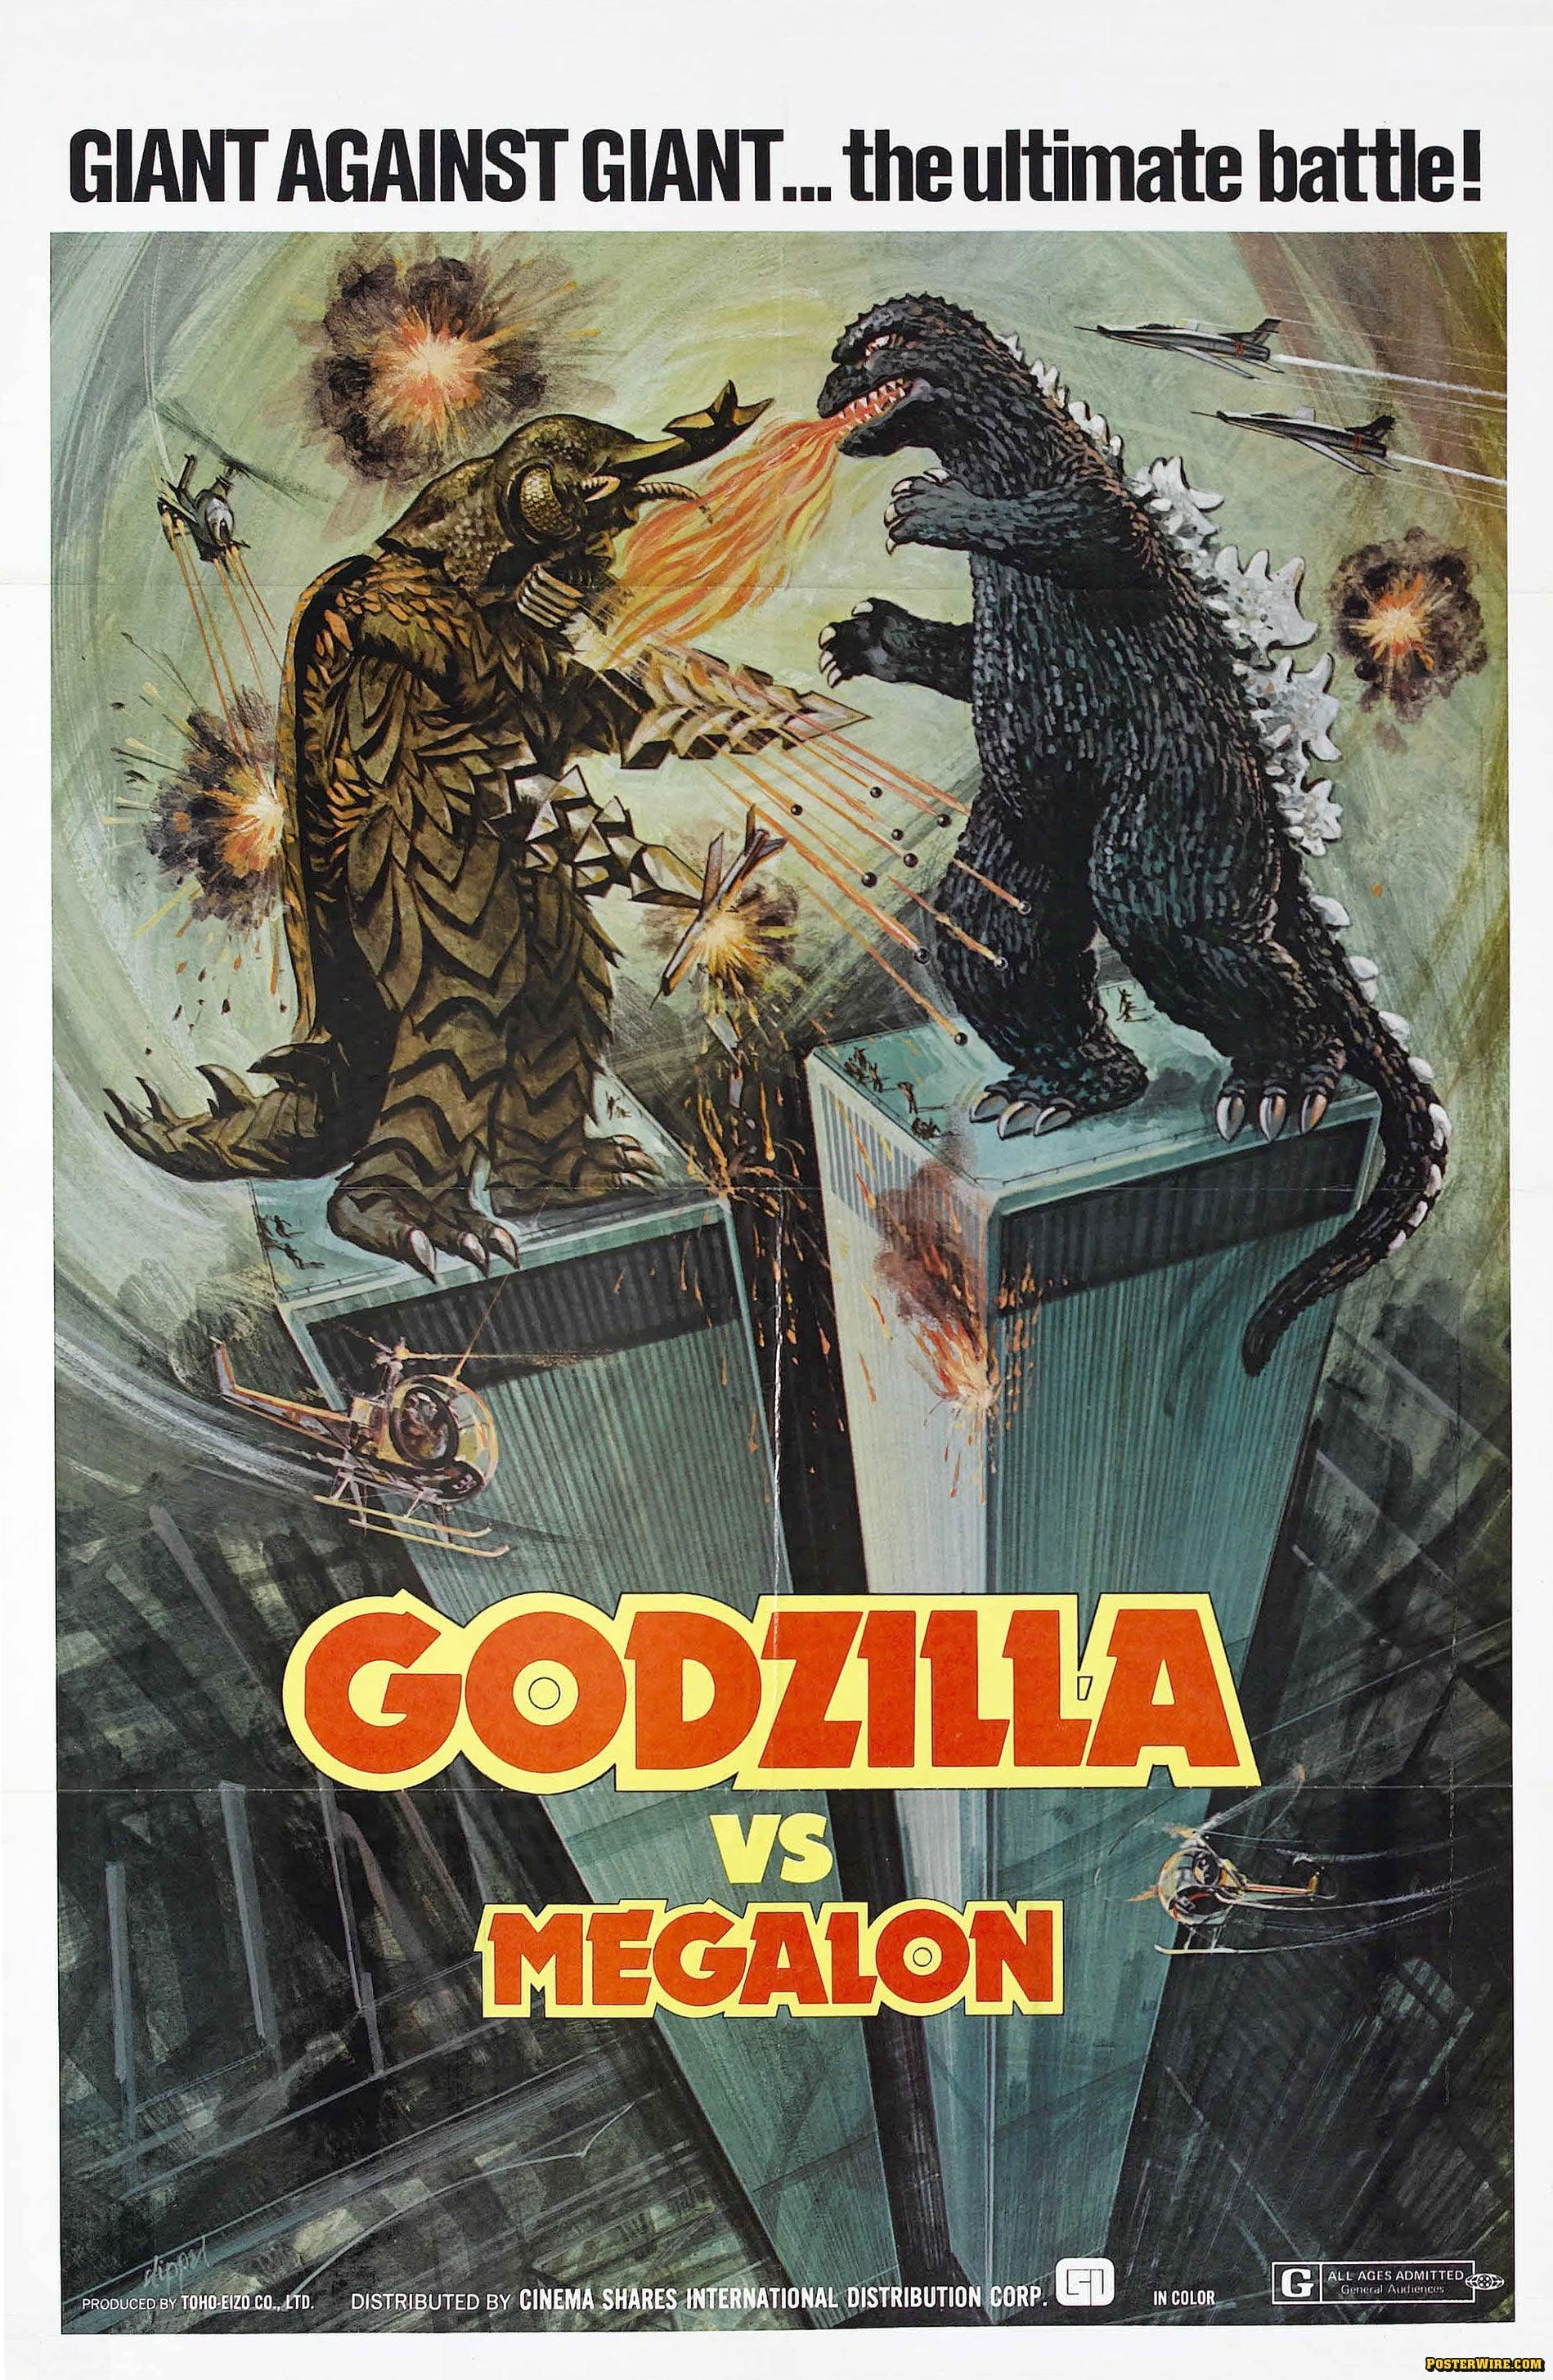 My Absolute Favorite Godzilla Poster Of All Time The Poster For Godzilla Vs Megalon Godzilla Godzilla Vs Movie Posters Vintage